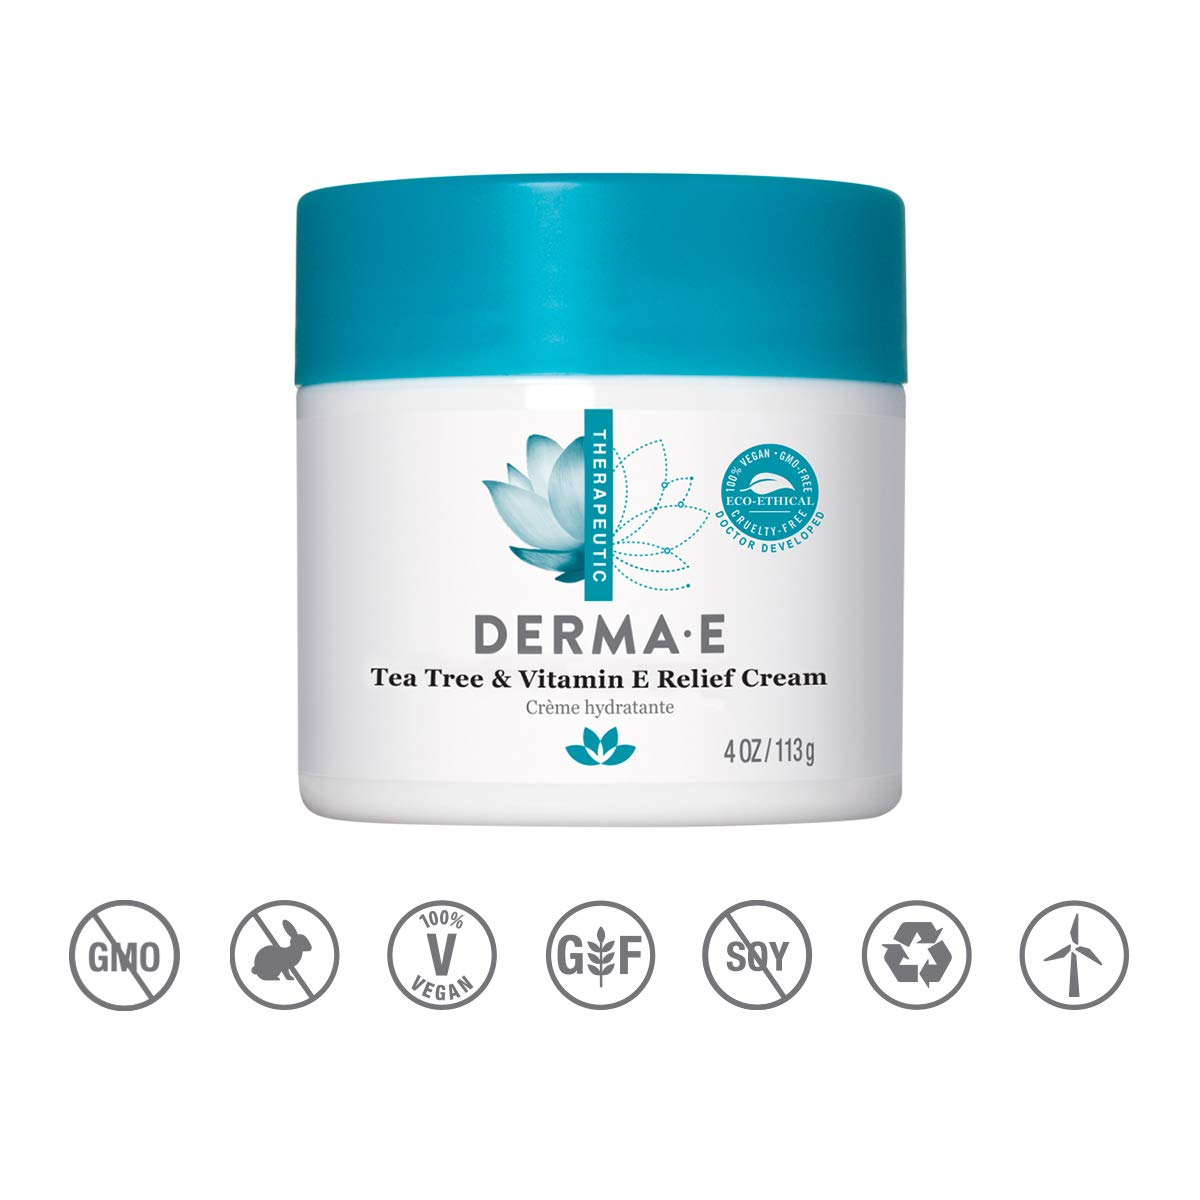 Derma E Tea Tree and Vitamin E Relief Cream, 4oz by DERMA-E